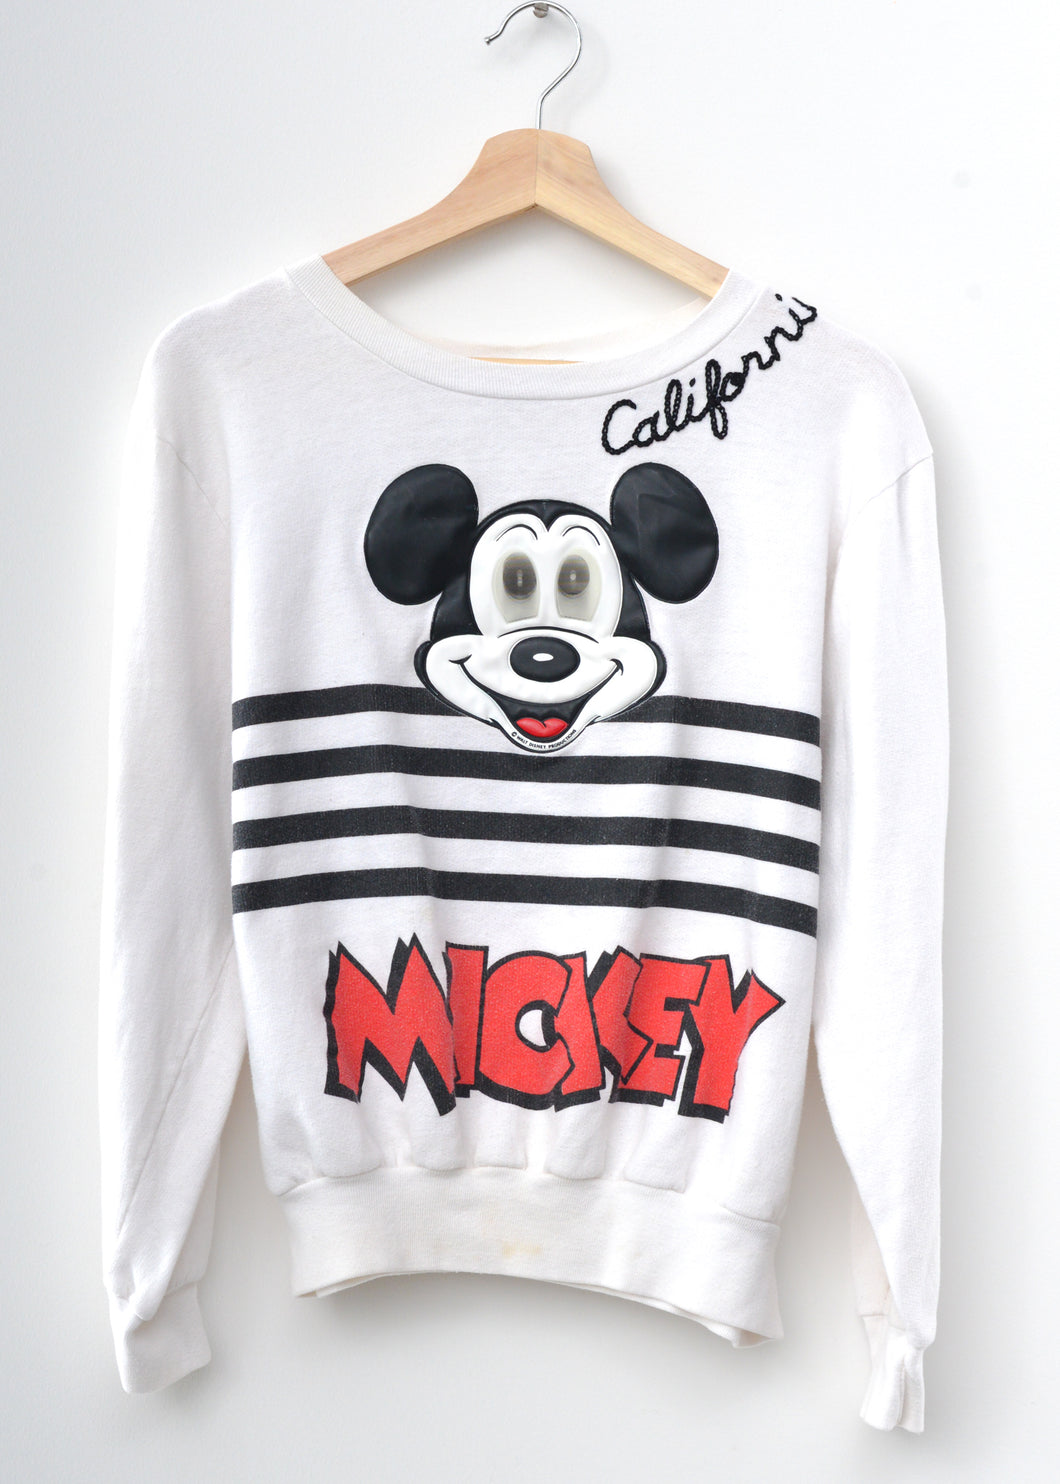 Vintage Mickey & California Embroidery Sweatshirt - Vintage White